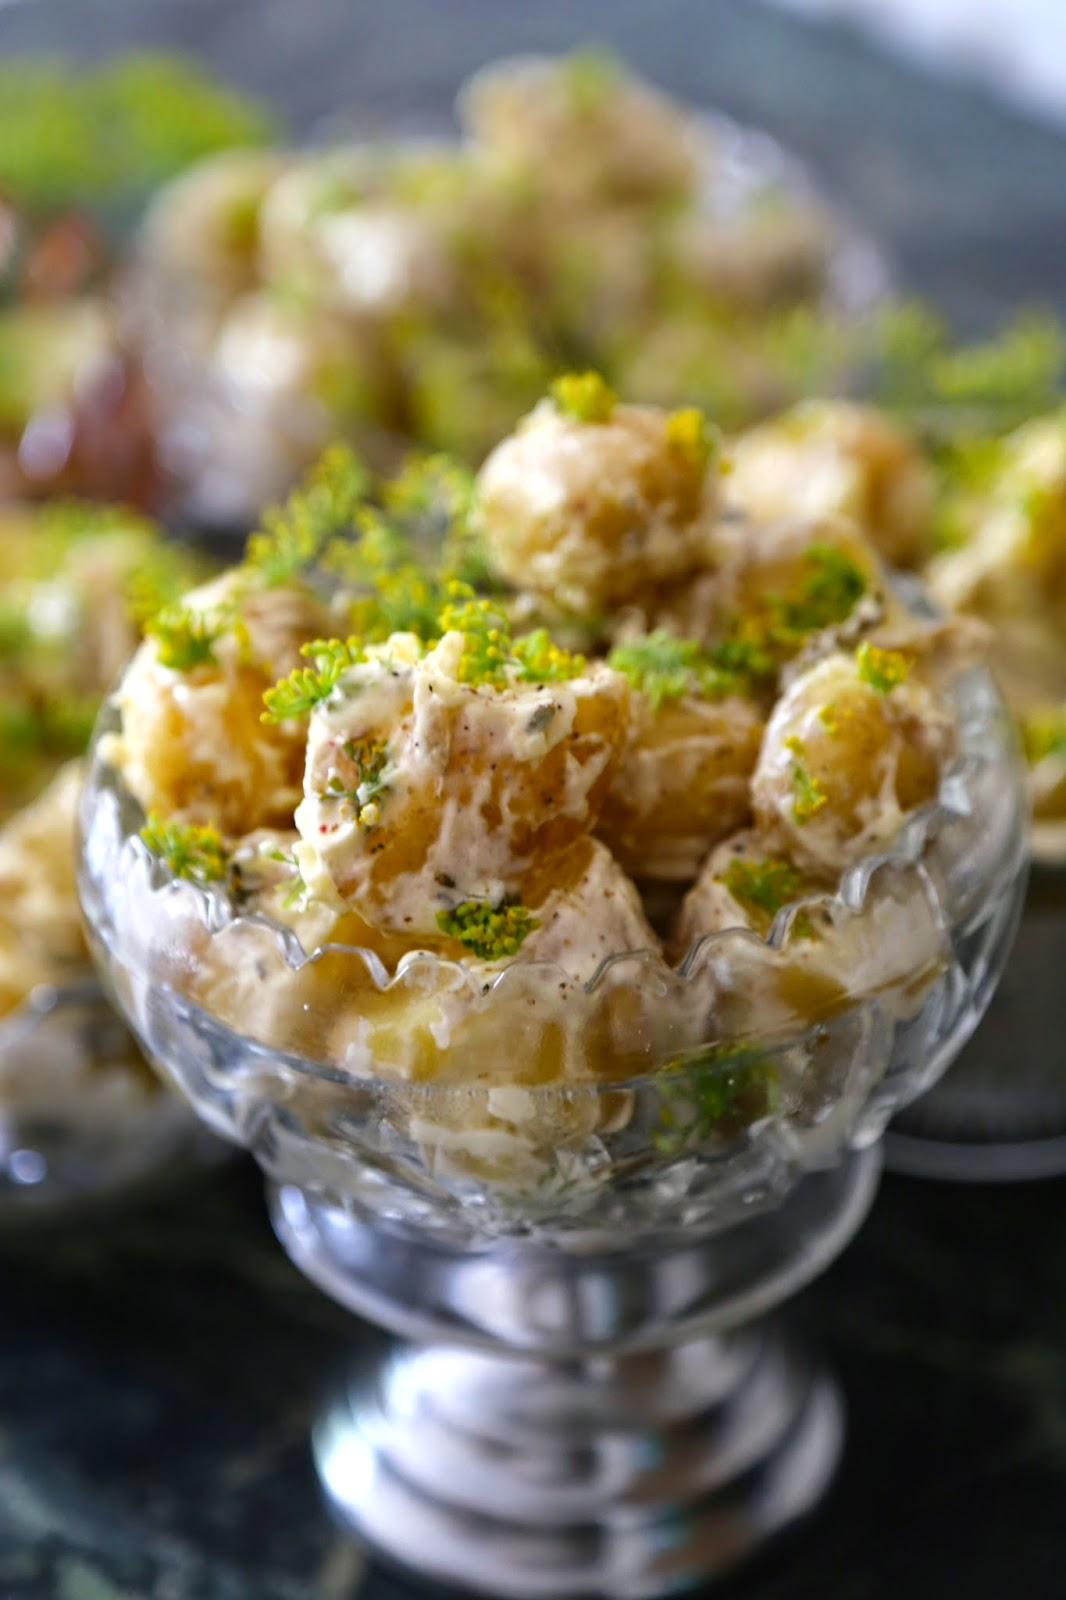 potato salad with fennel flowers